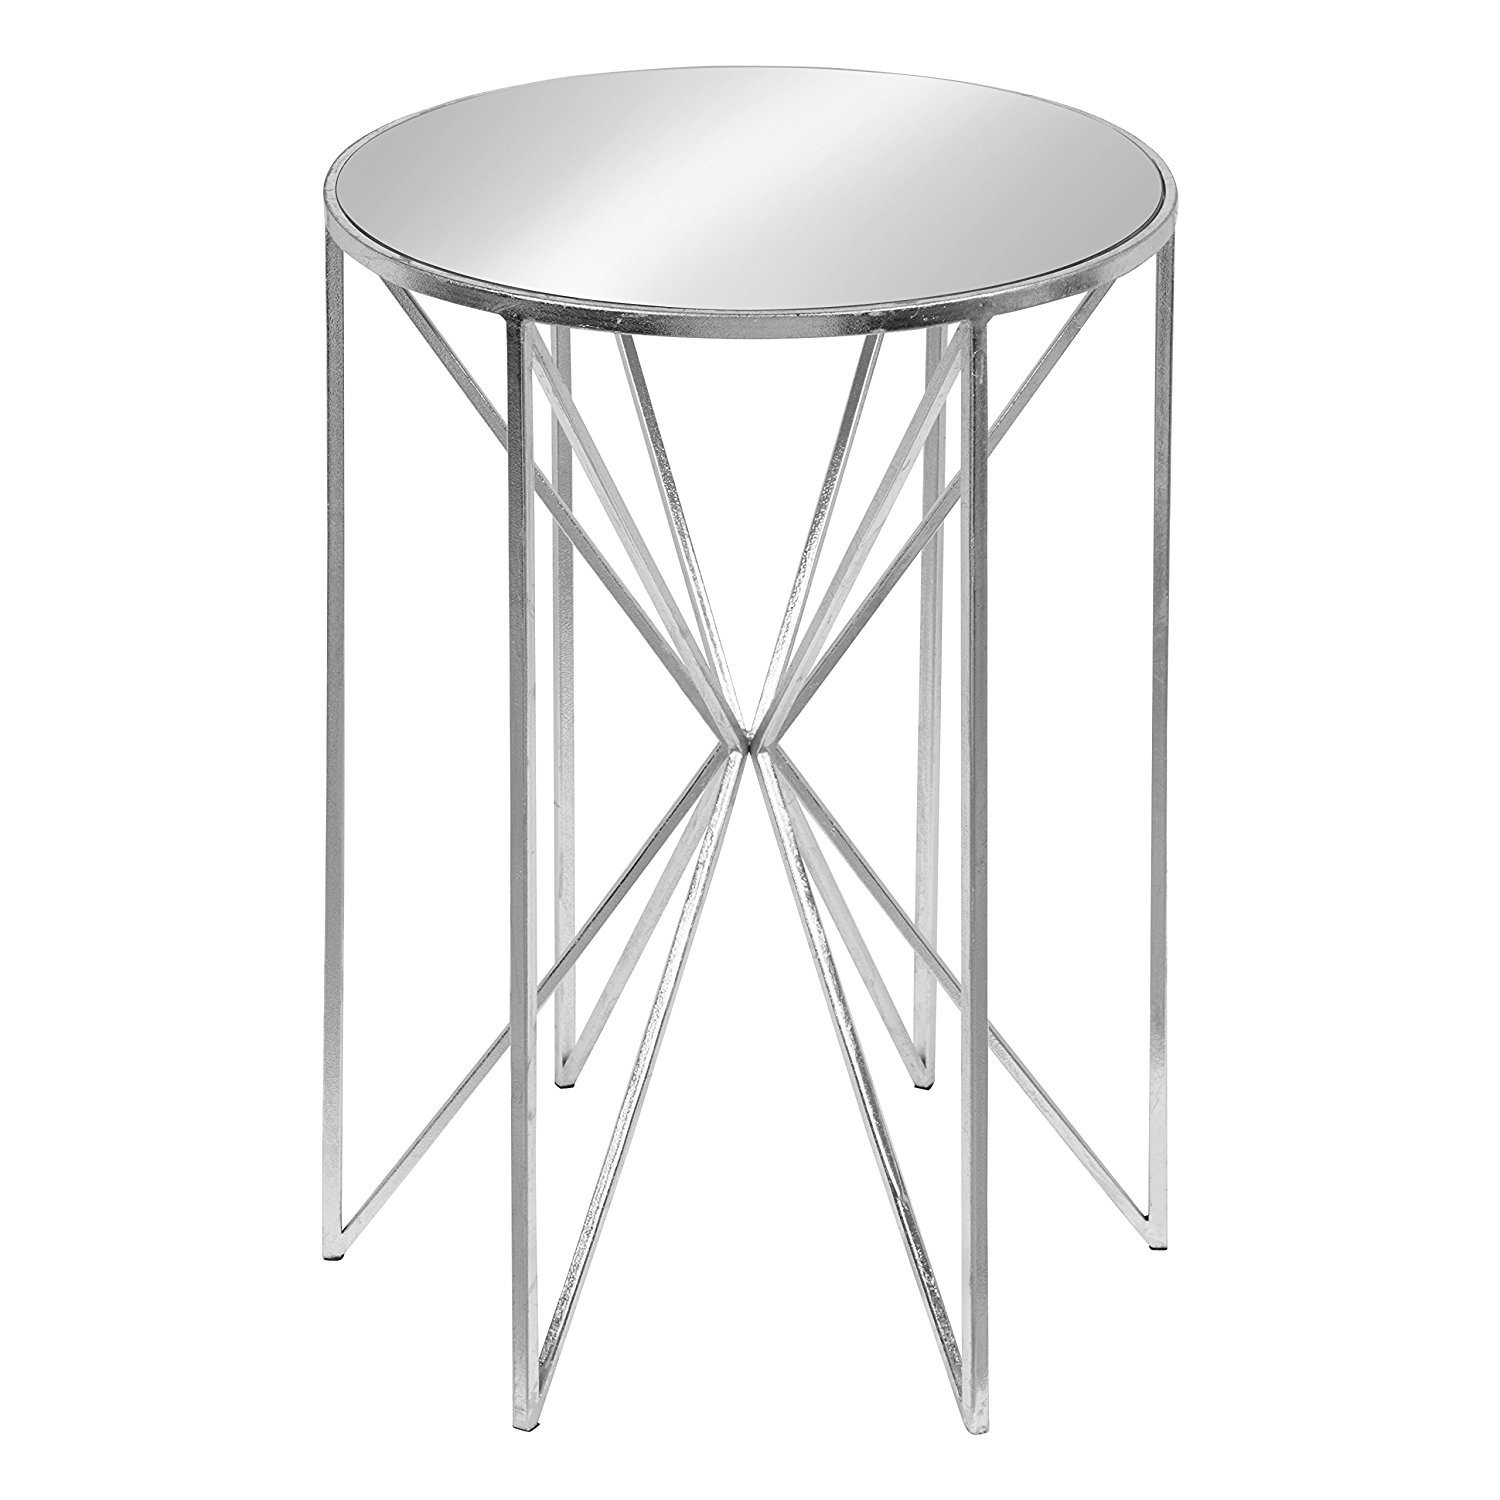 Cheap Mirrored Side Table Round Find Mirrored Side Table Round